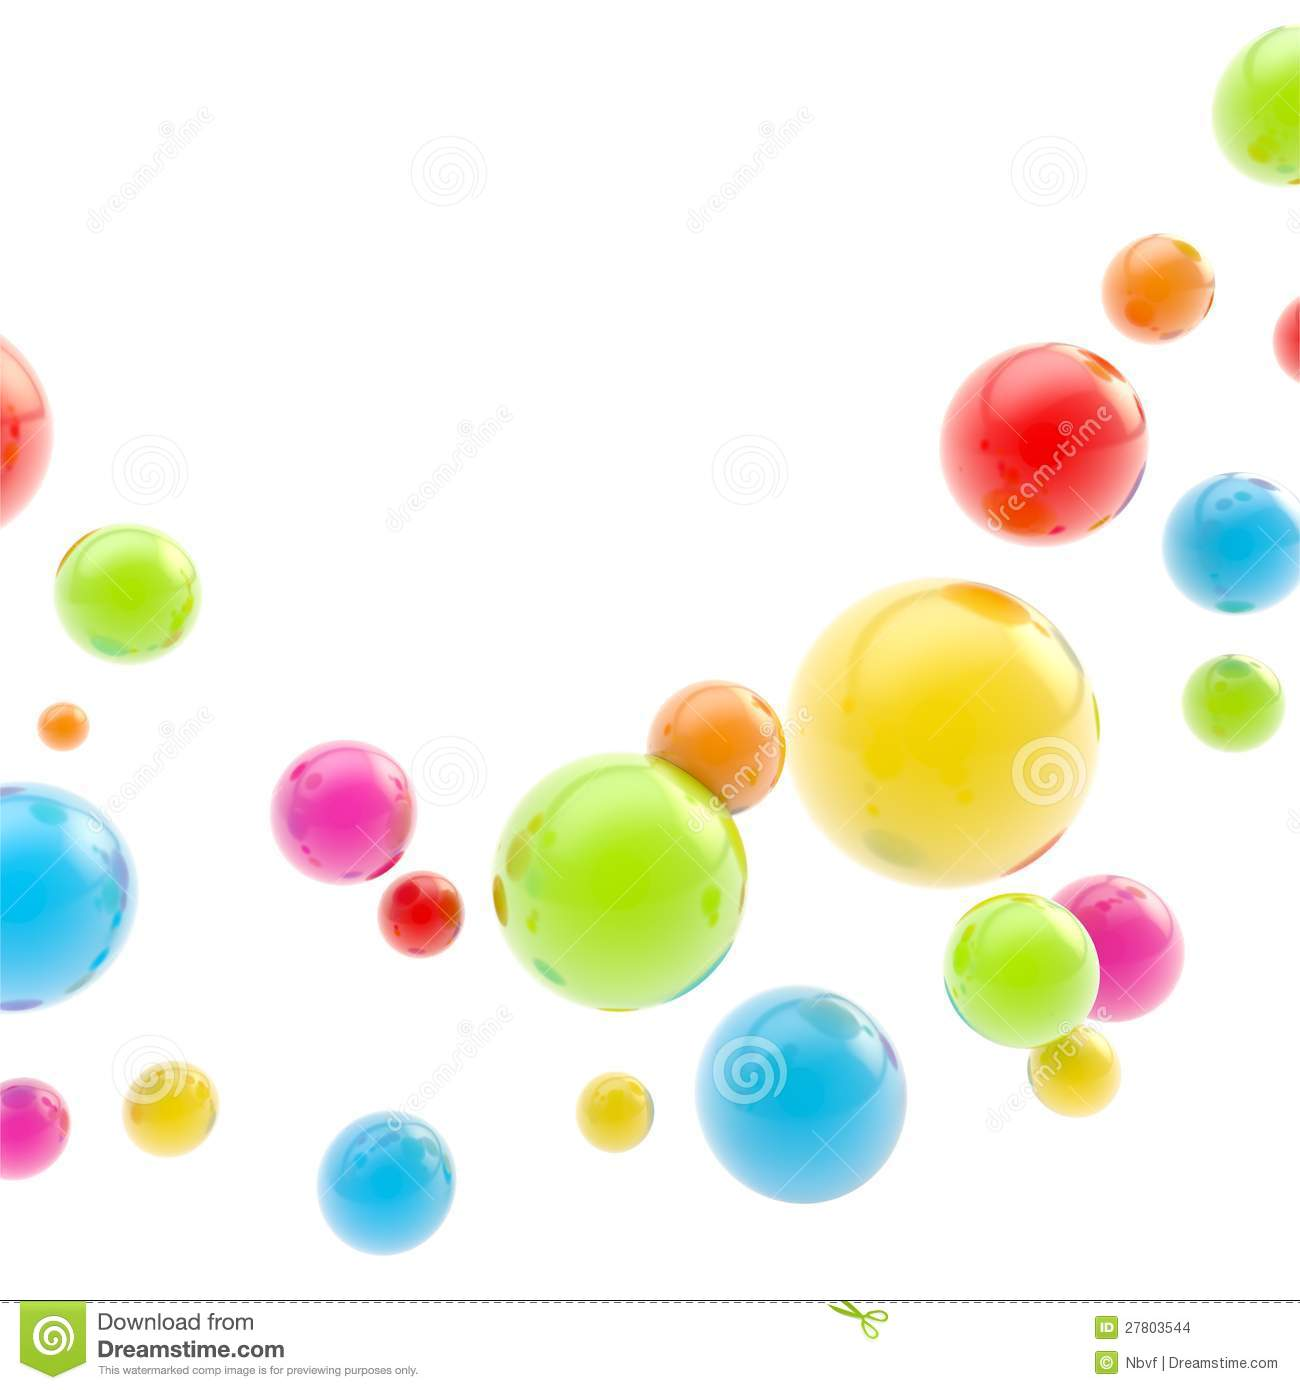 Abstract copyspace backdrop made of glossy spheres